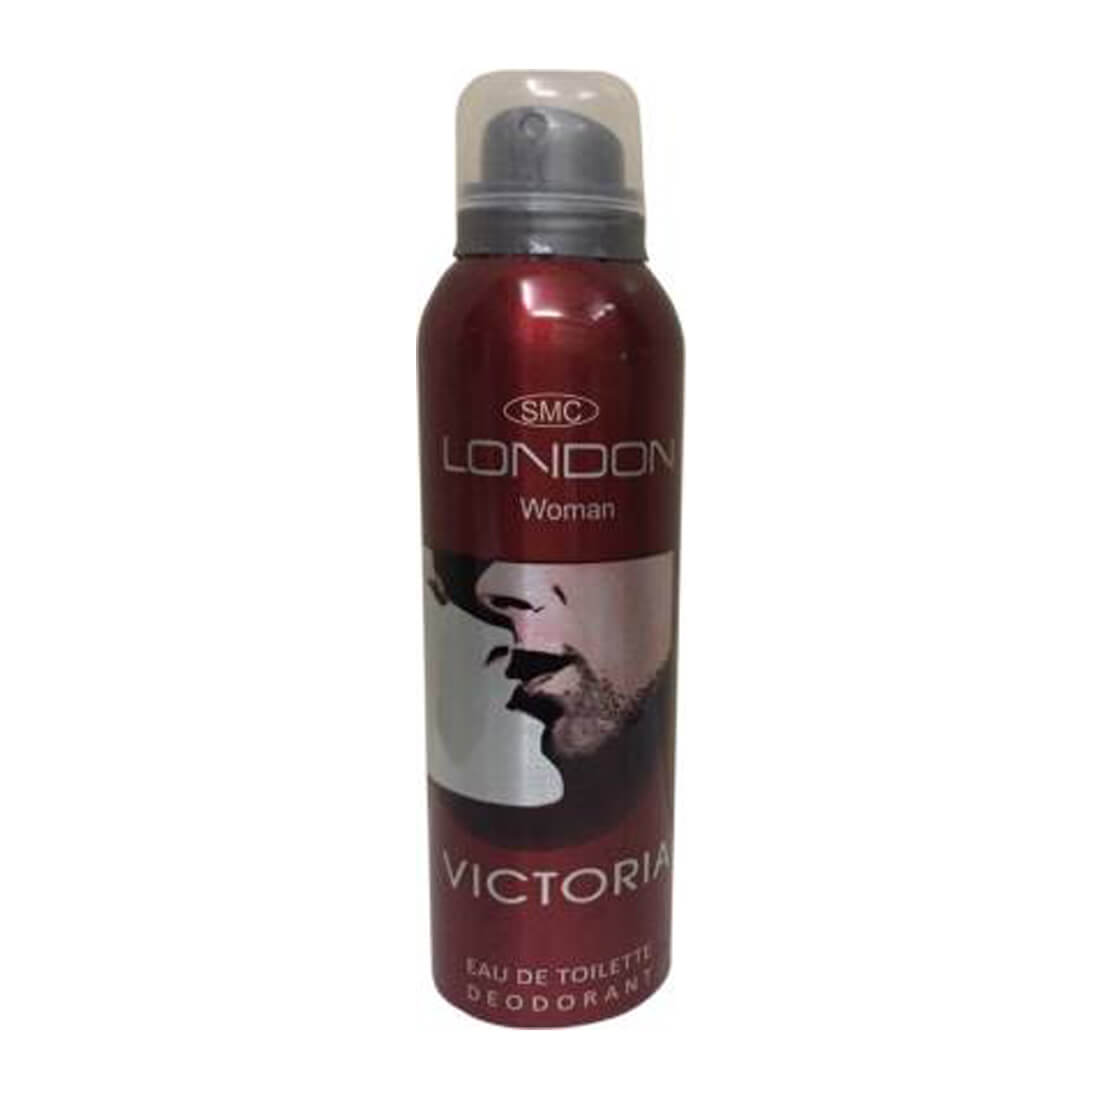 London Victoria Deodorant Body Spray Pack of 2 x 200ml